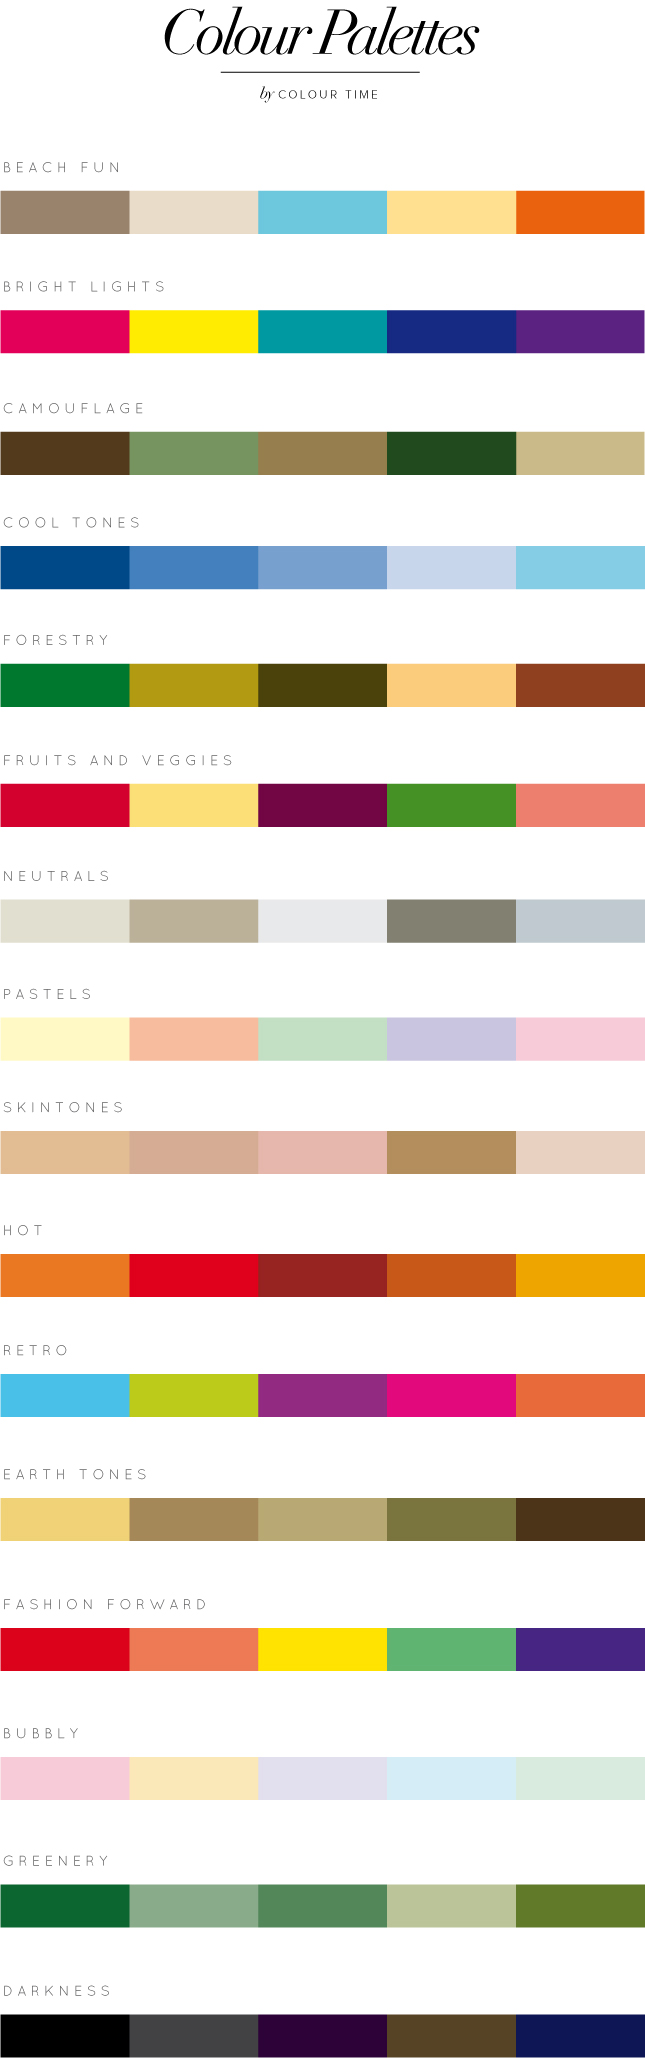 Colour-Palettes